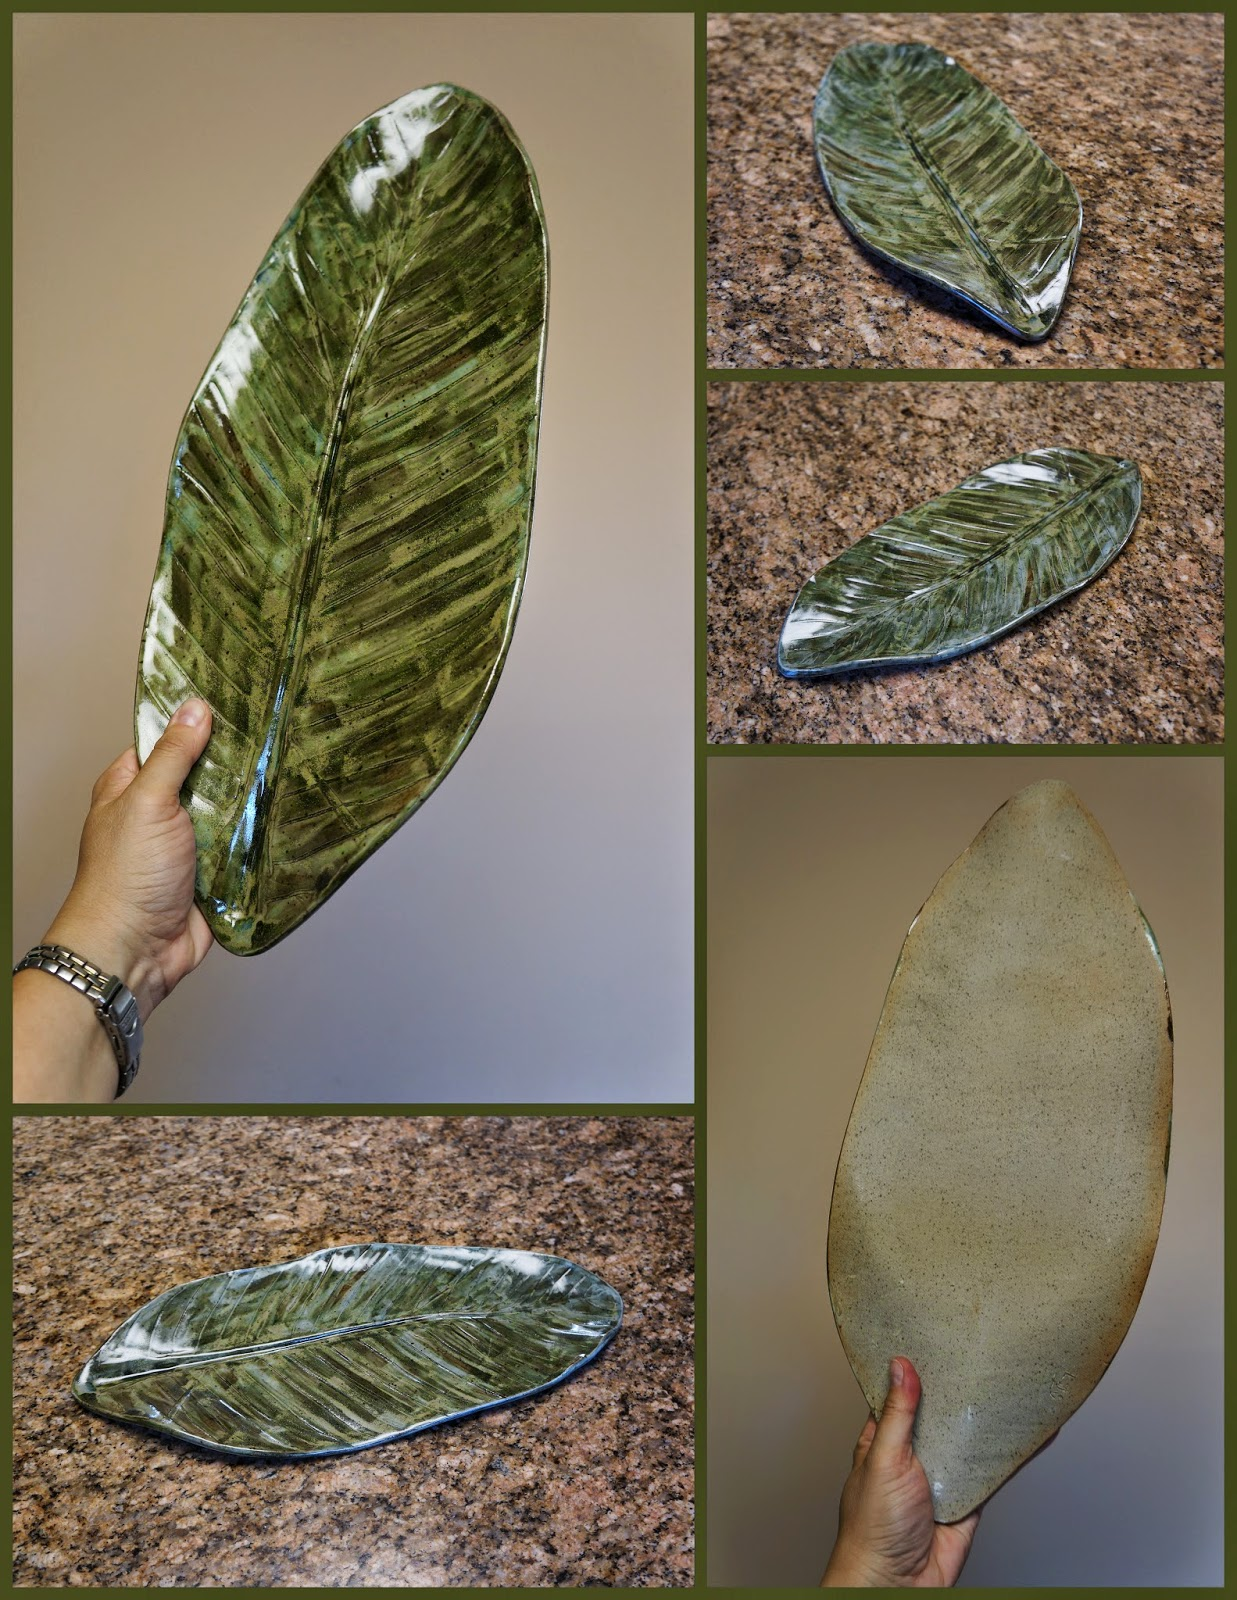 Stoneware pottery ceramic platter made from pressed banana leaf.